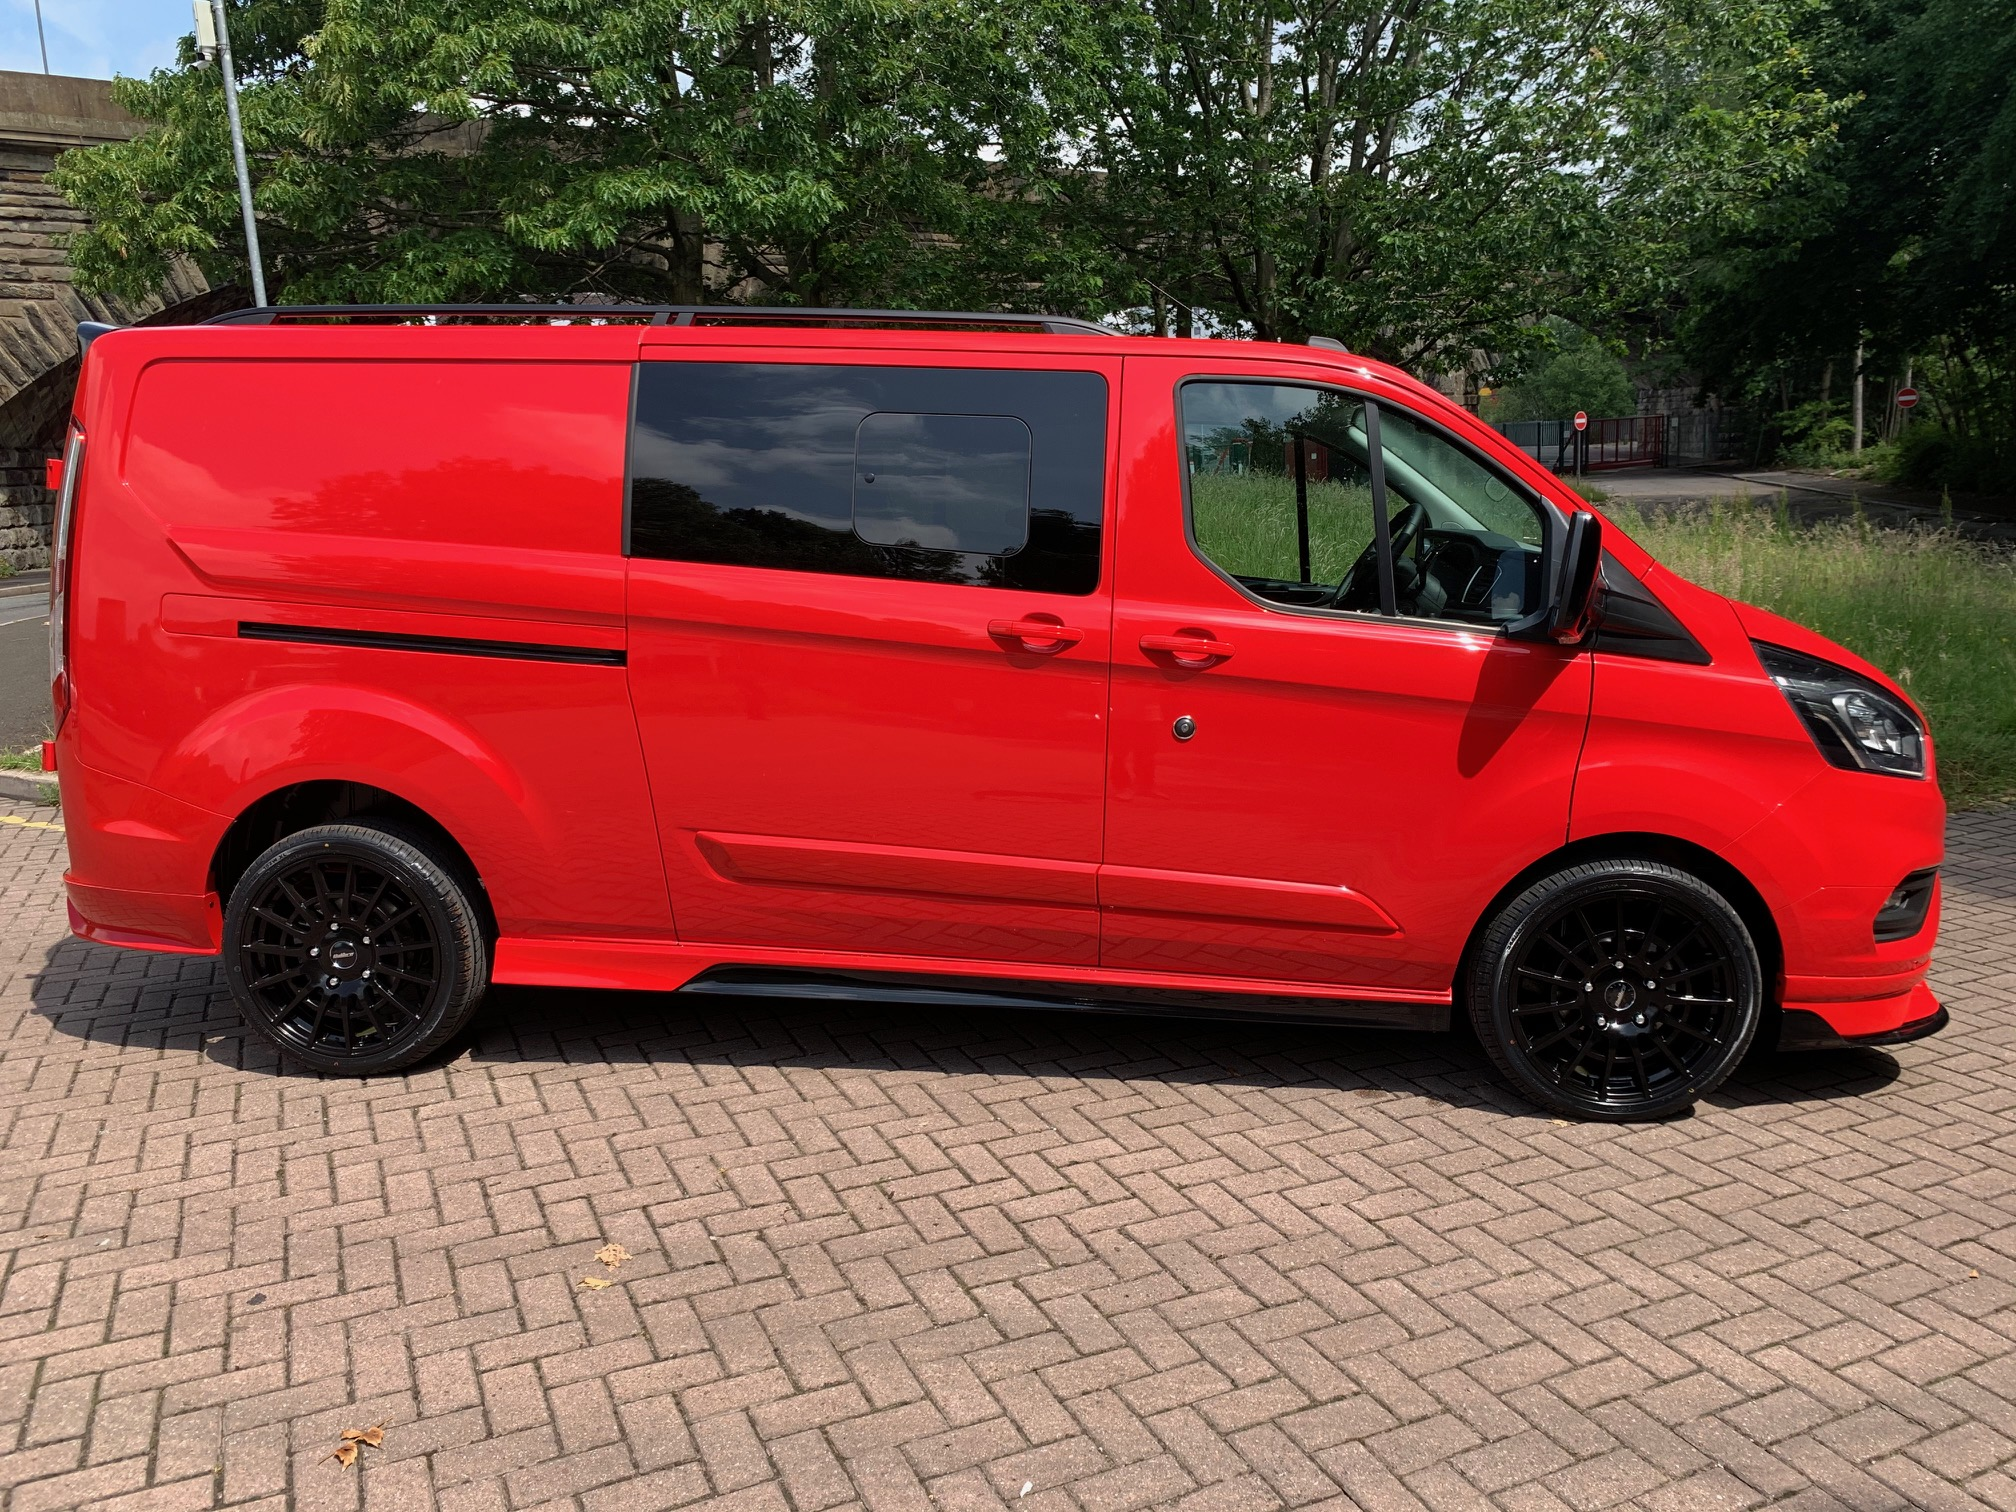 IMG_5703.jpg - Inferno X 320 L2 Double Cab In Van 2.0tdci 130 Limited